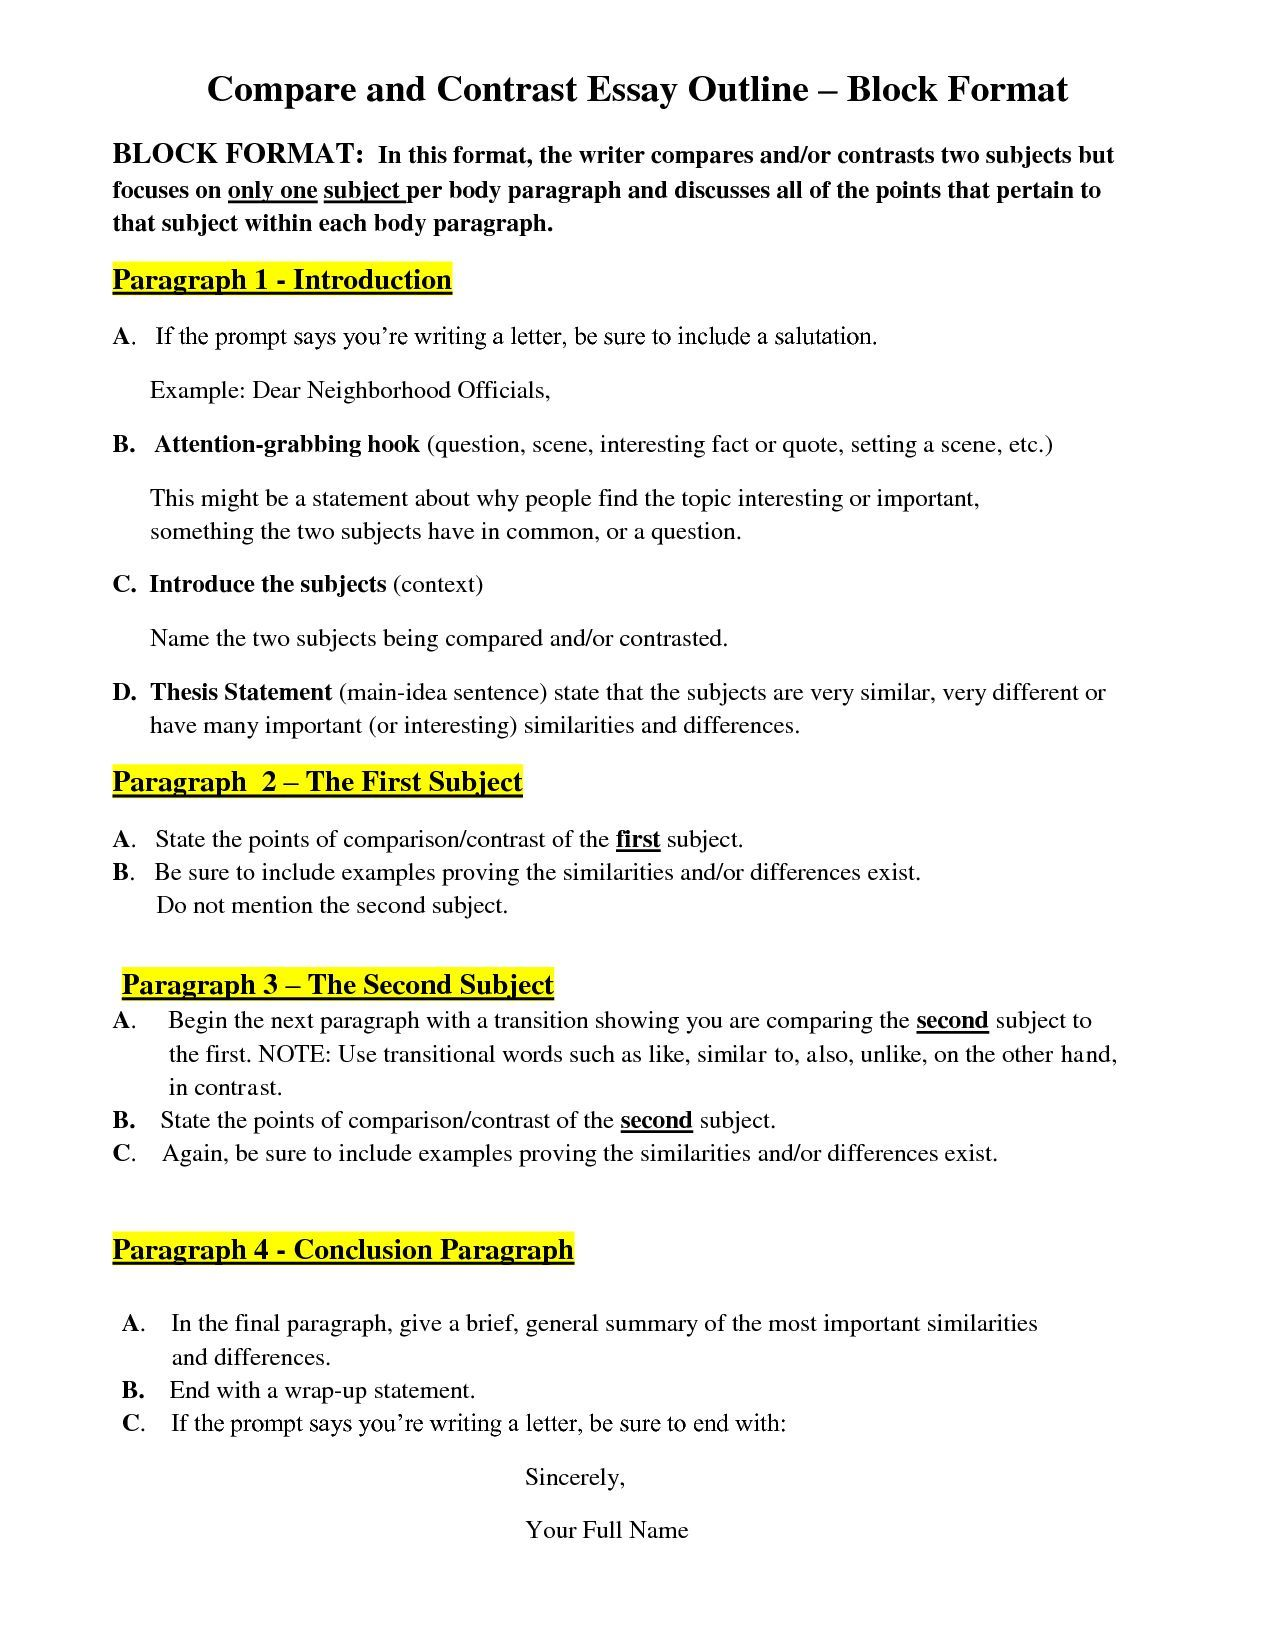 Compare and contrast essay example thesis statement writing my performance evaluation